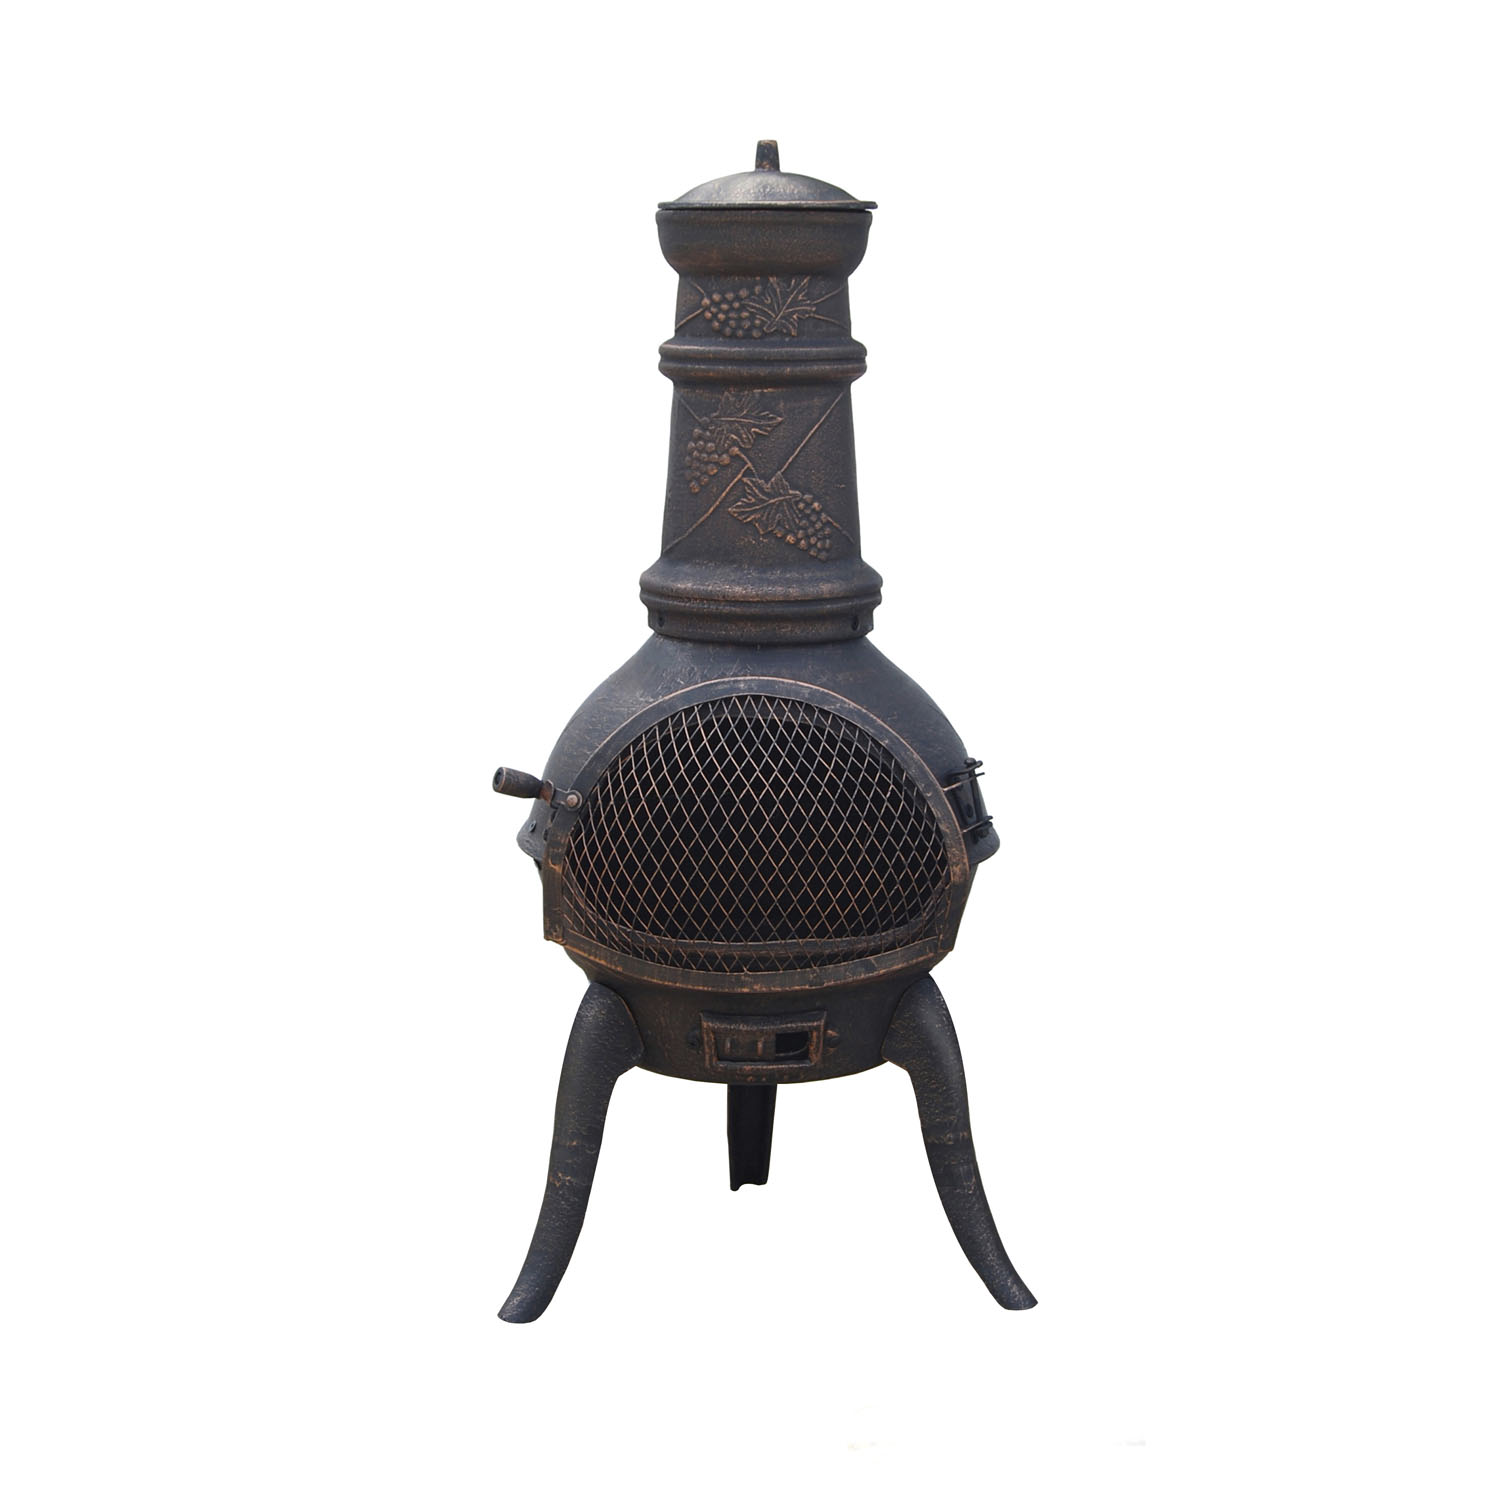 Antique Chiminea Make Smoke Up For Outdoor Furniture Ideas